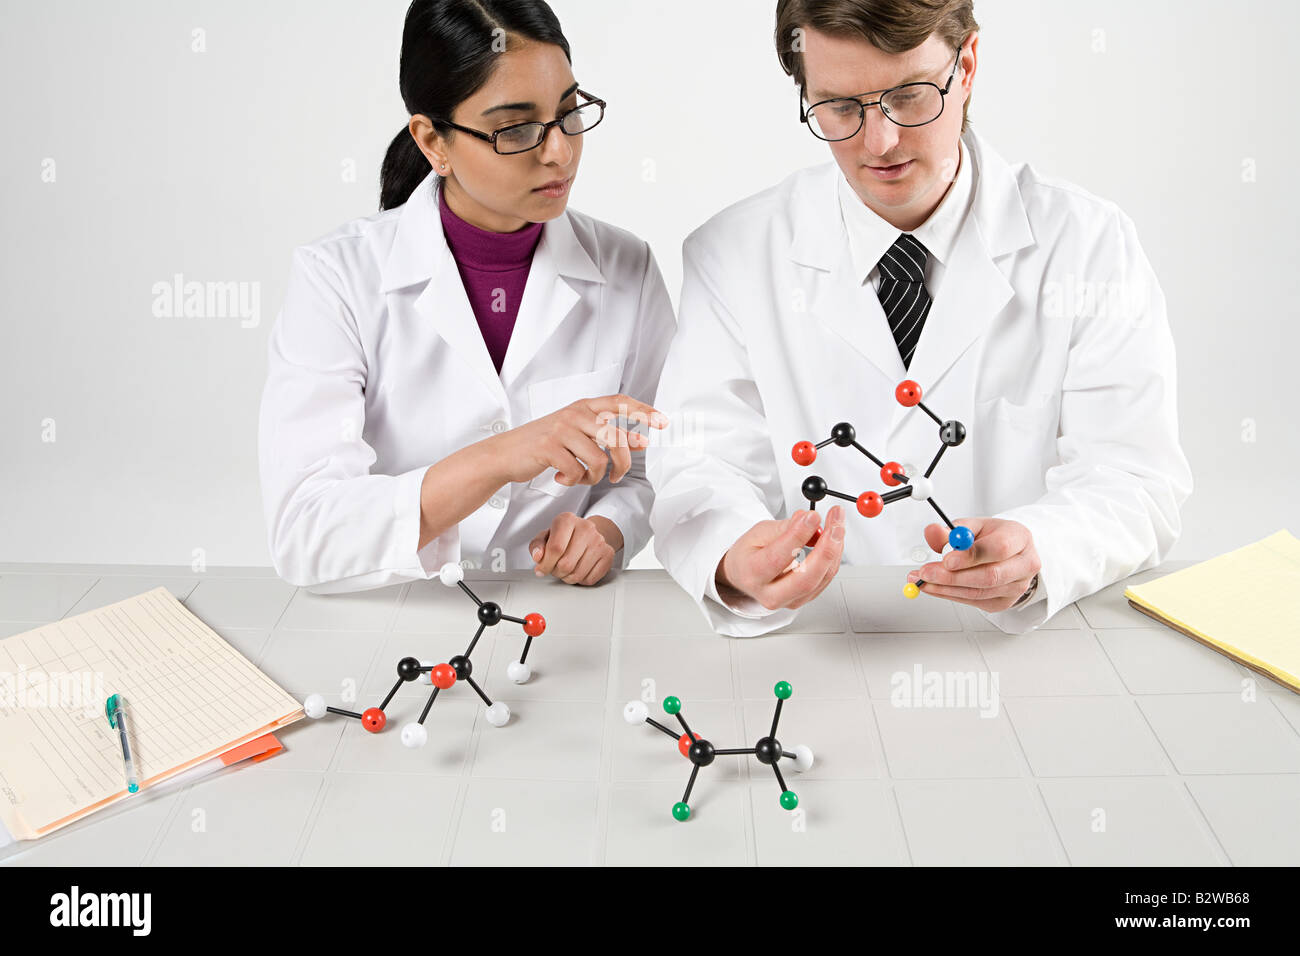 Scientists with molecule models Stock Photo